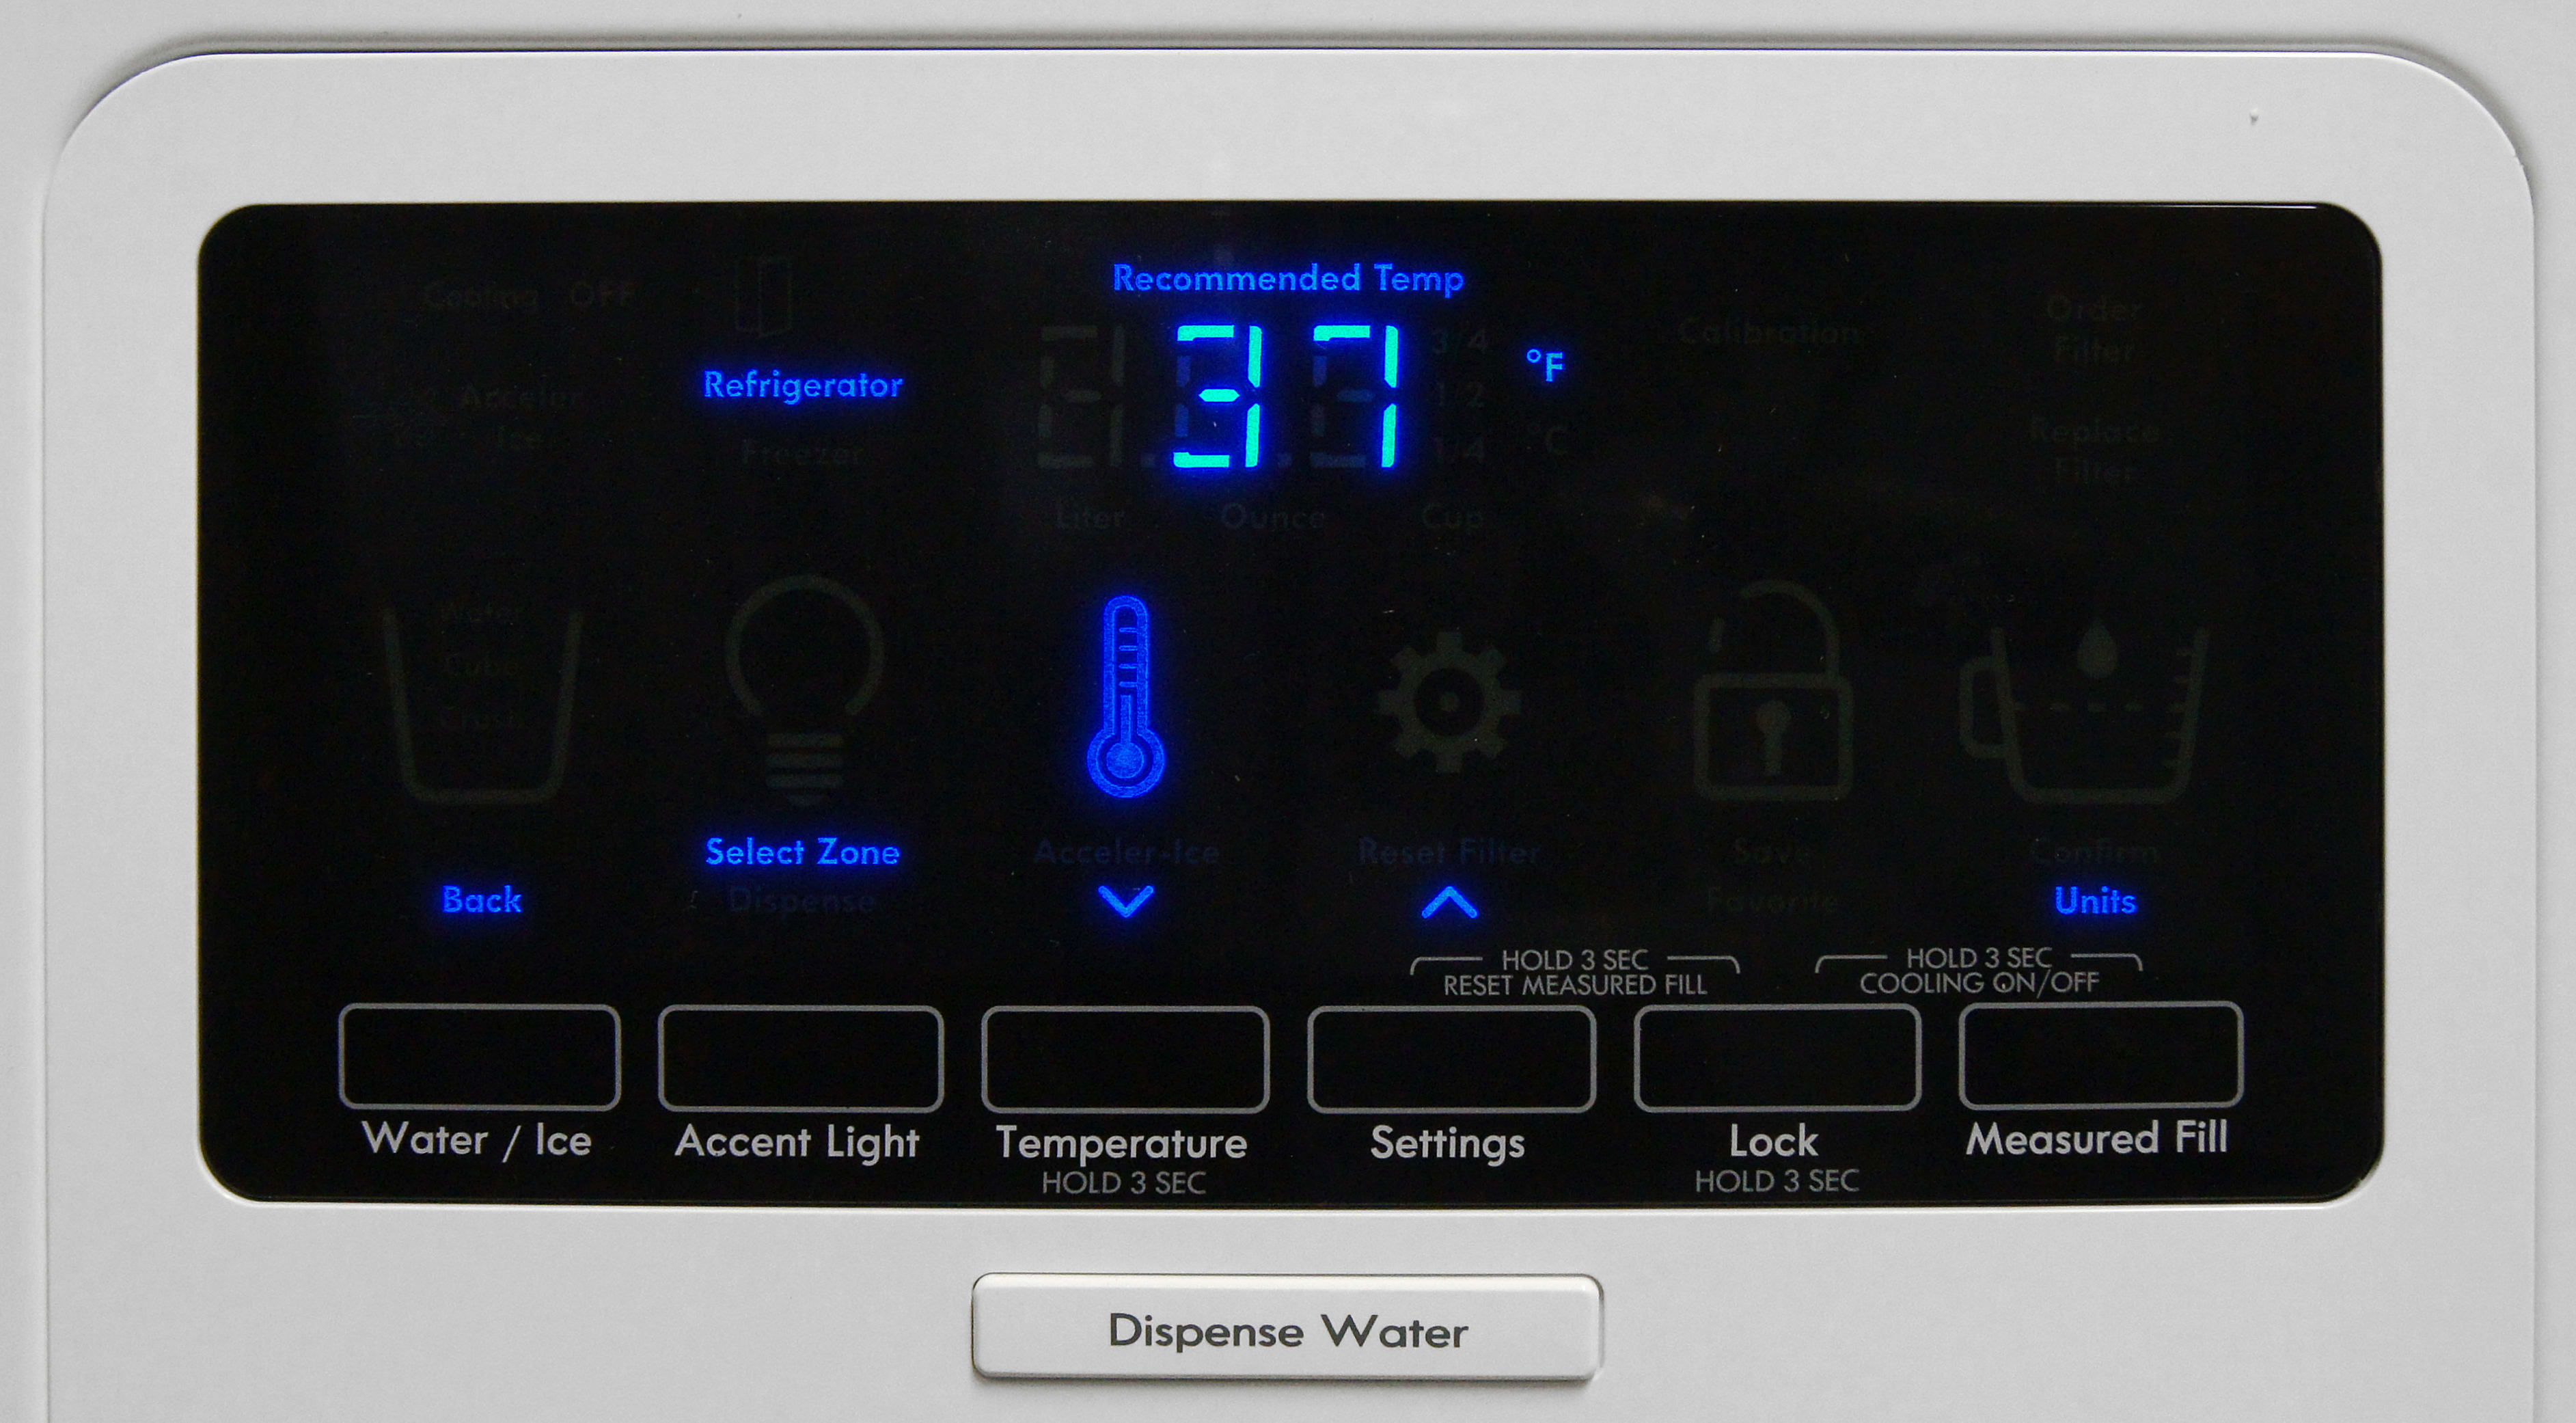 The Kenmore Elite 51162's controls look sleek, but having to hold down buttons to adjust most of the settings make for a clunky experience.